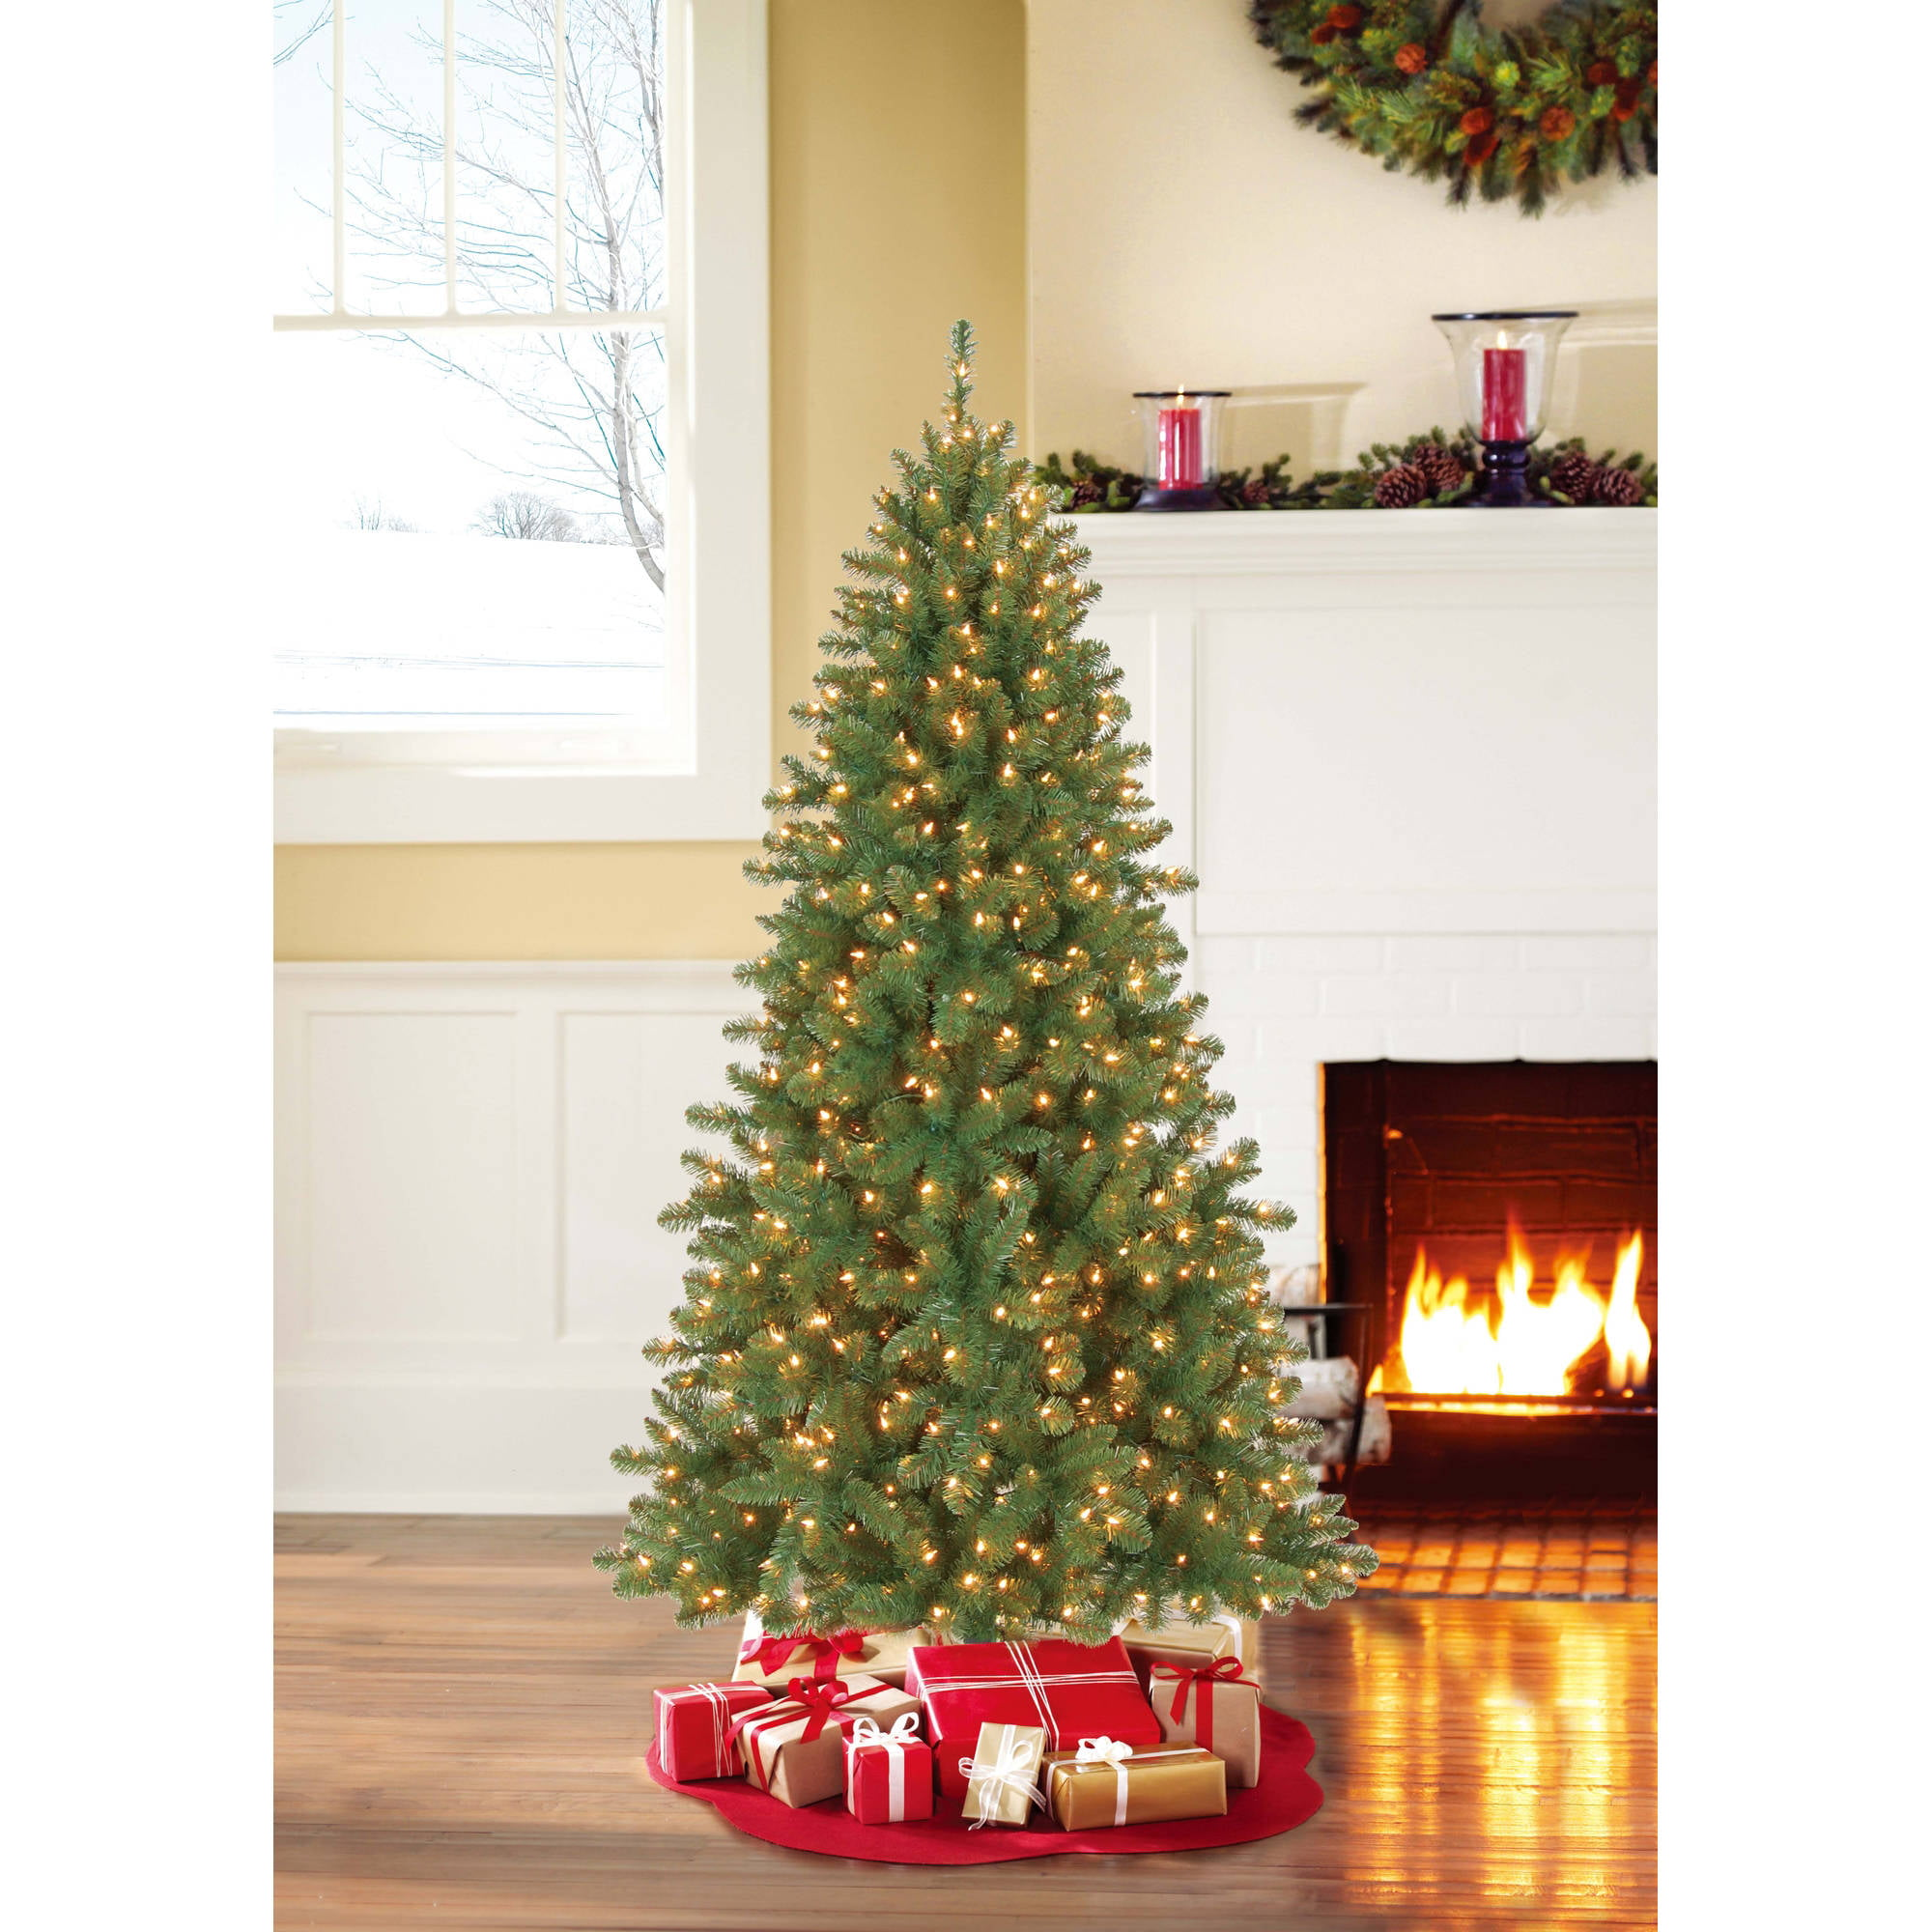 best choice products 75ft pre lit spruce hinged artificial christmas tree w 550 led lights foldable stand green walmartcom - Pre Decorated Christmas Trees